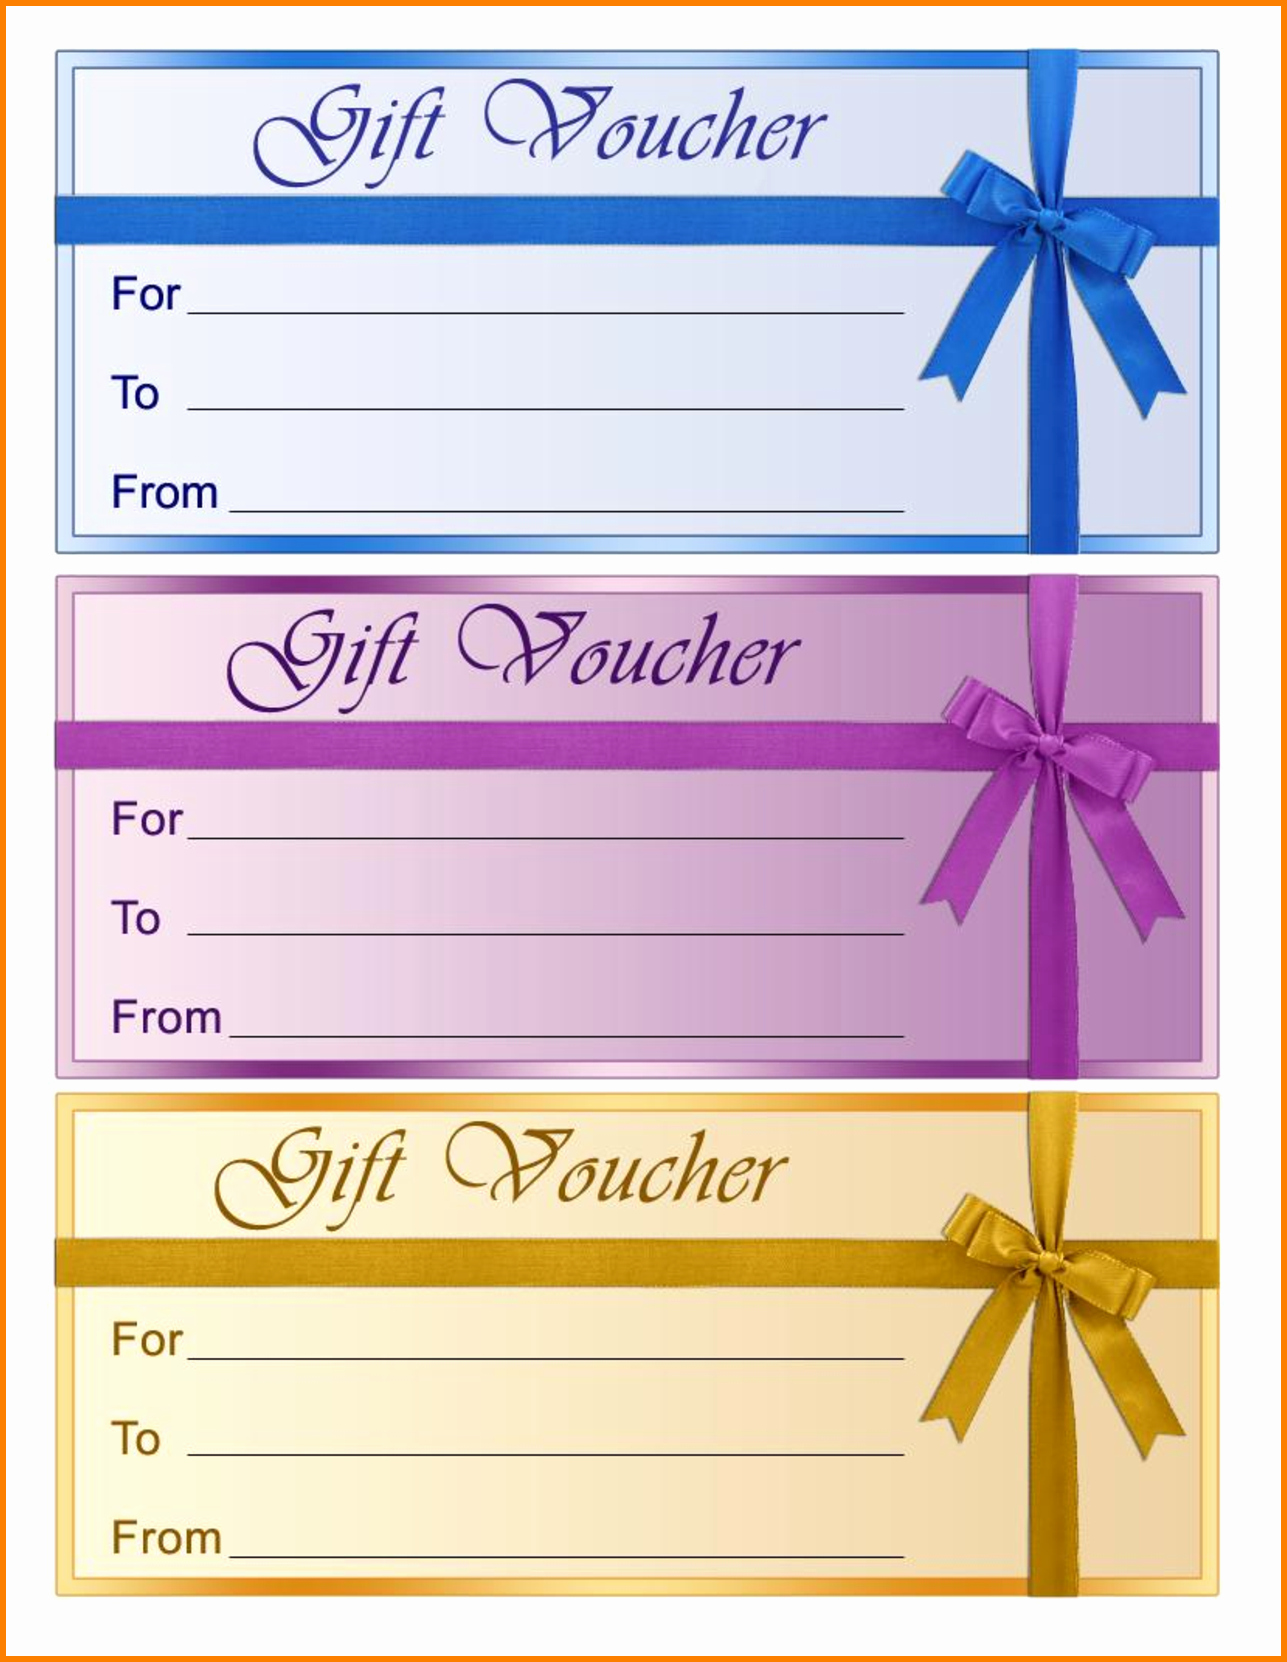 Blank Gift Certificate Template Free New Perfect format Samples Of Gift Voucher and Certificate